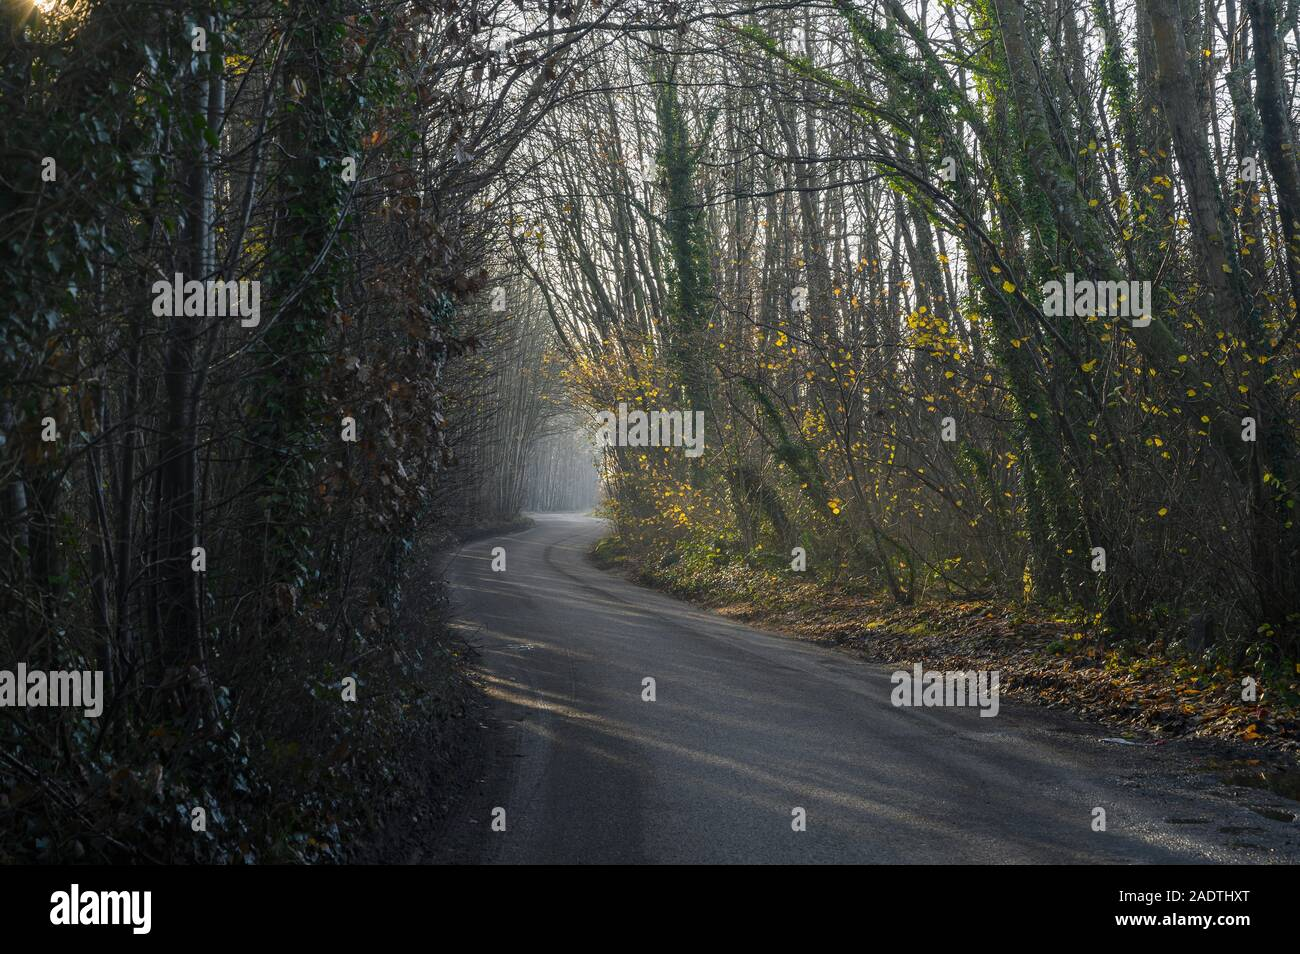 Morning sun filters through trees and a narrow country lane winds through  the woods Stock Photo